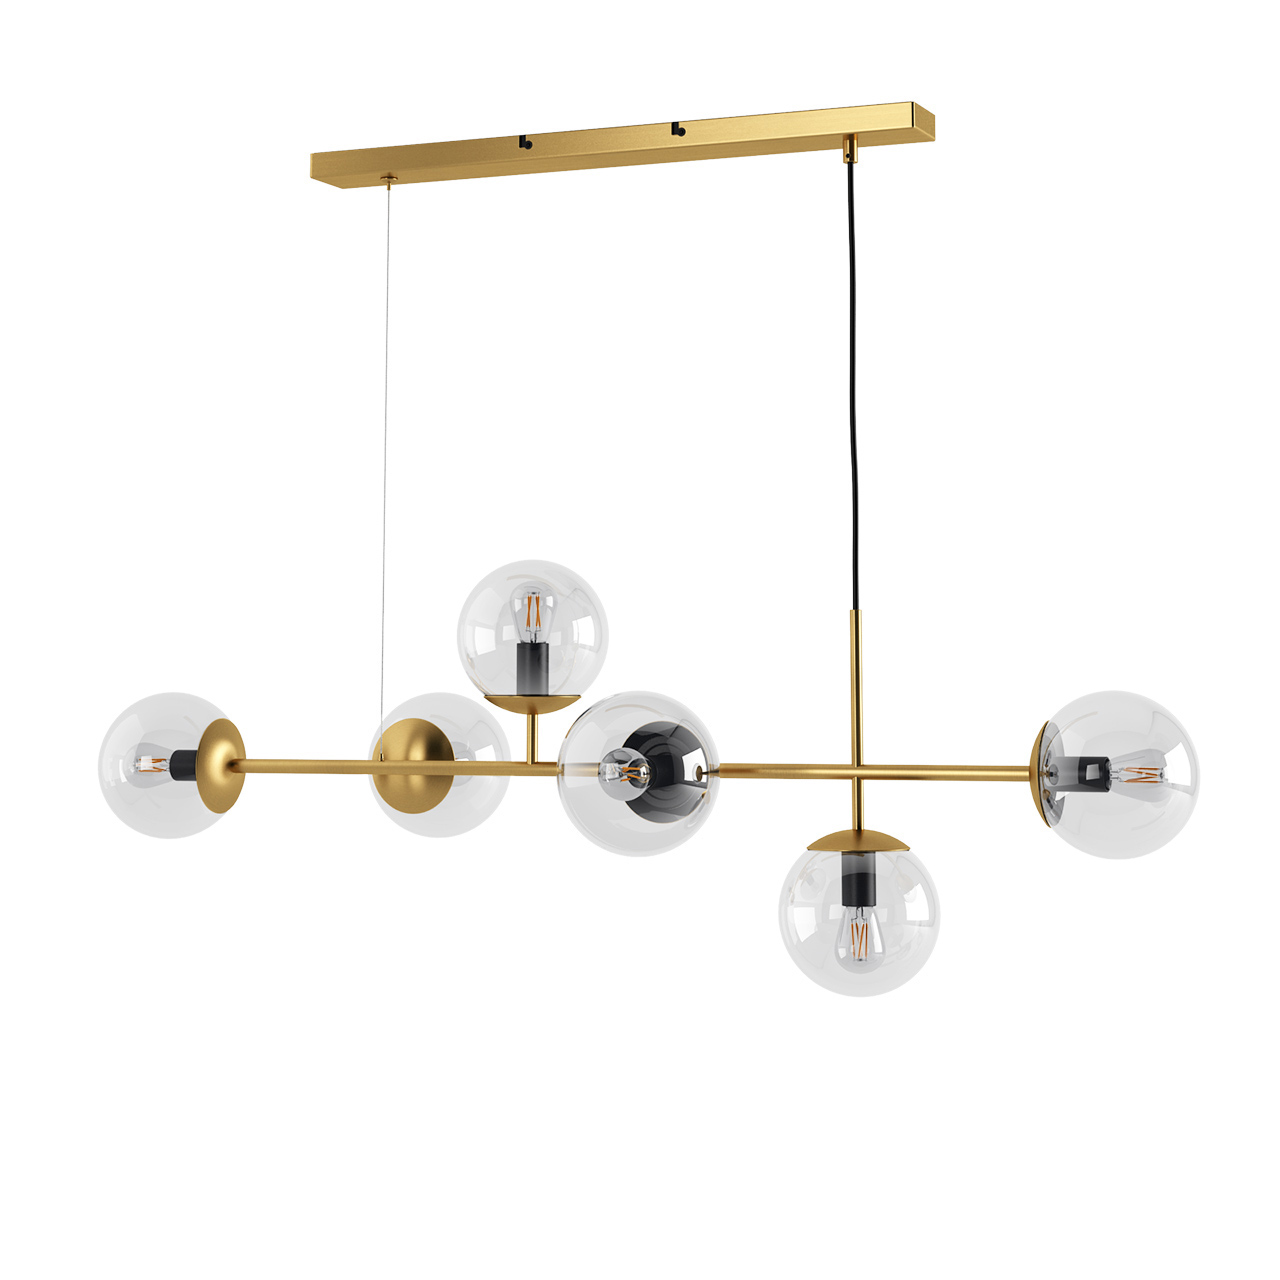 Orb Pendant by Bolia